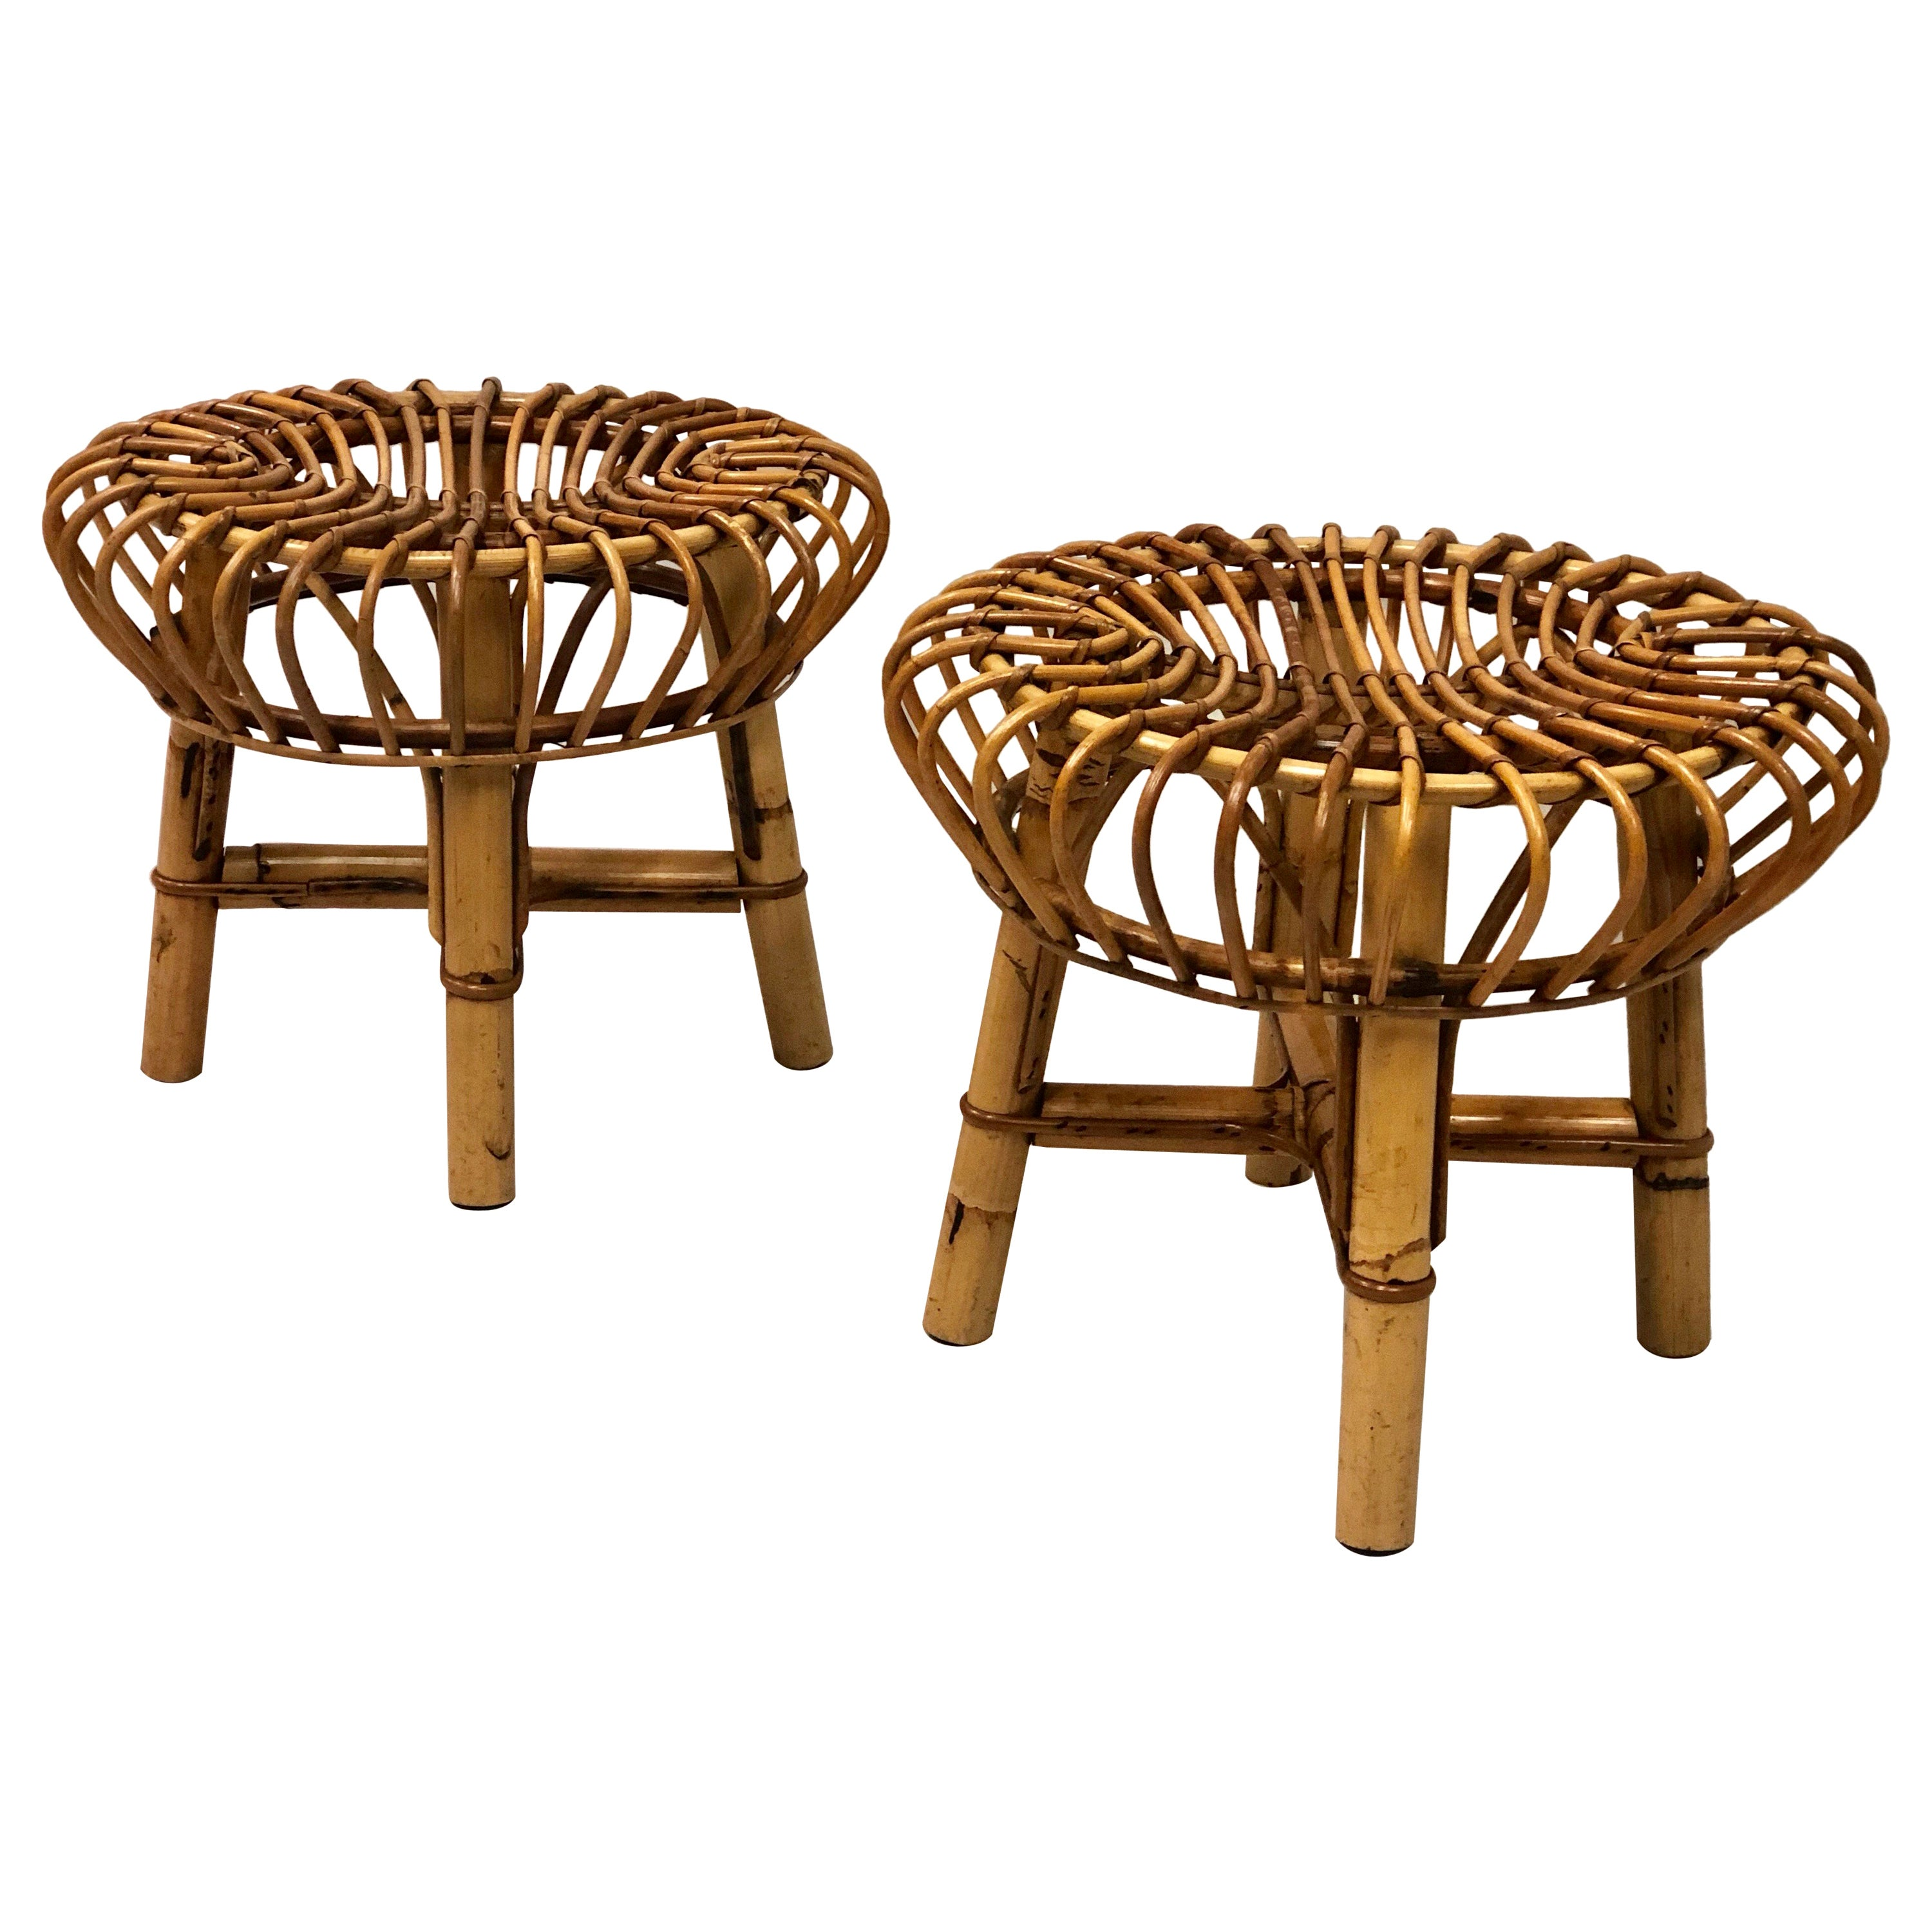 Pair of Italian Mid-Century Modern Rattan and Bamboo Stools by Franco Albini